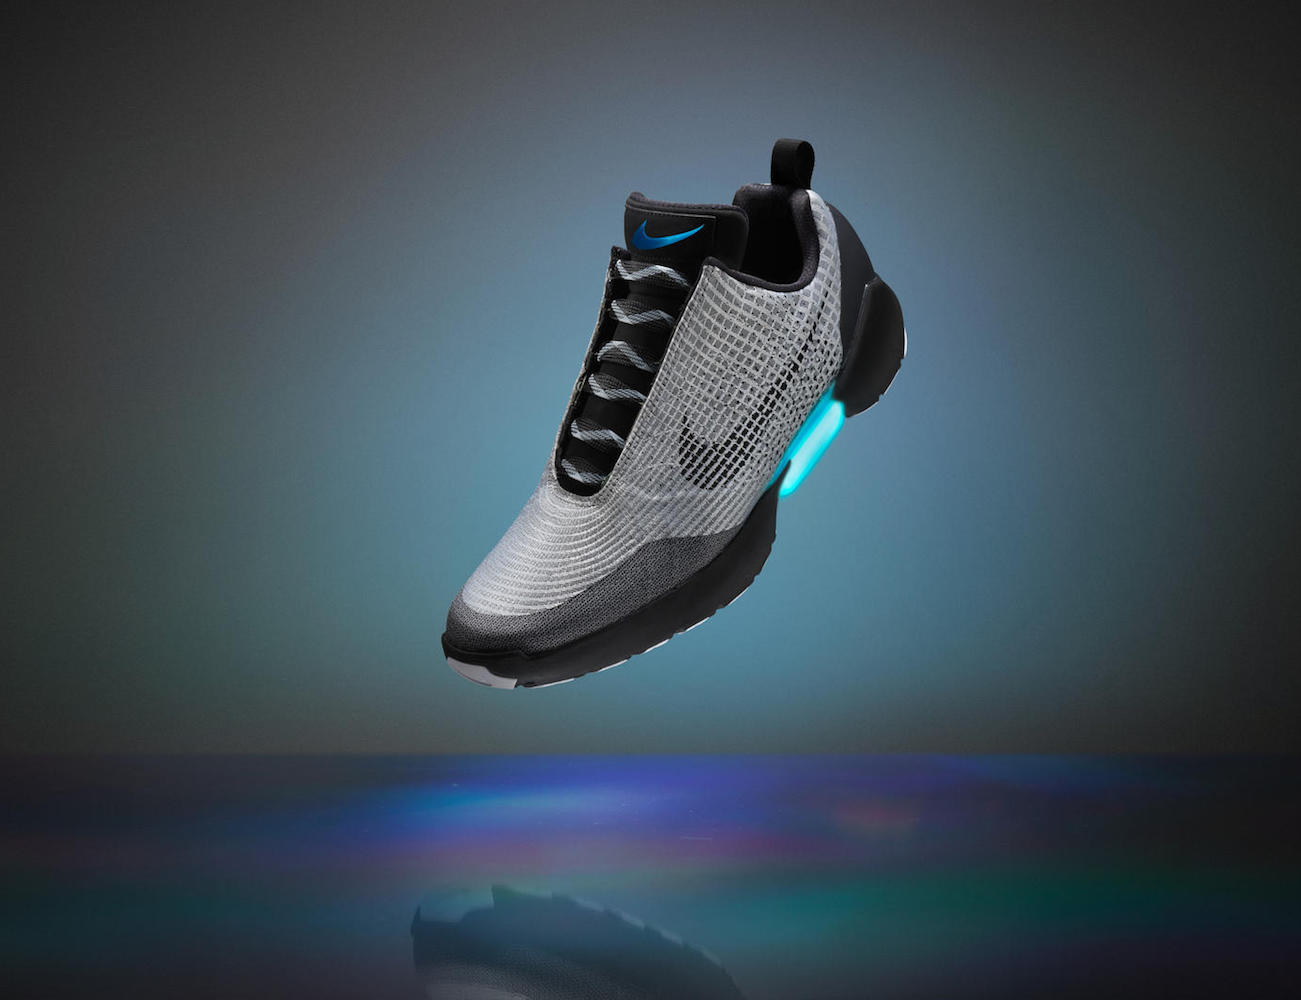 Hyperadapt 1.0 Self-Tying Sneakers by Nike